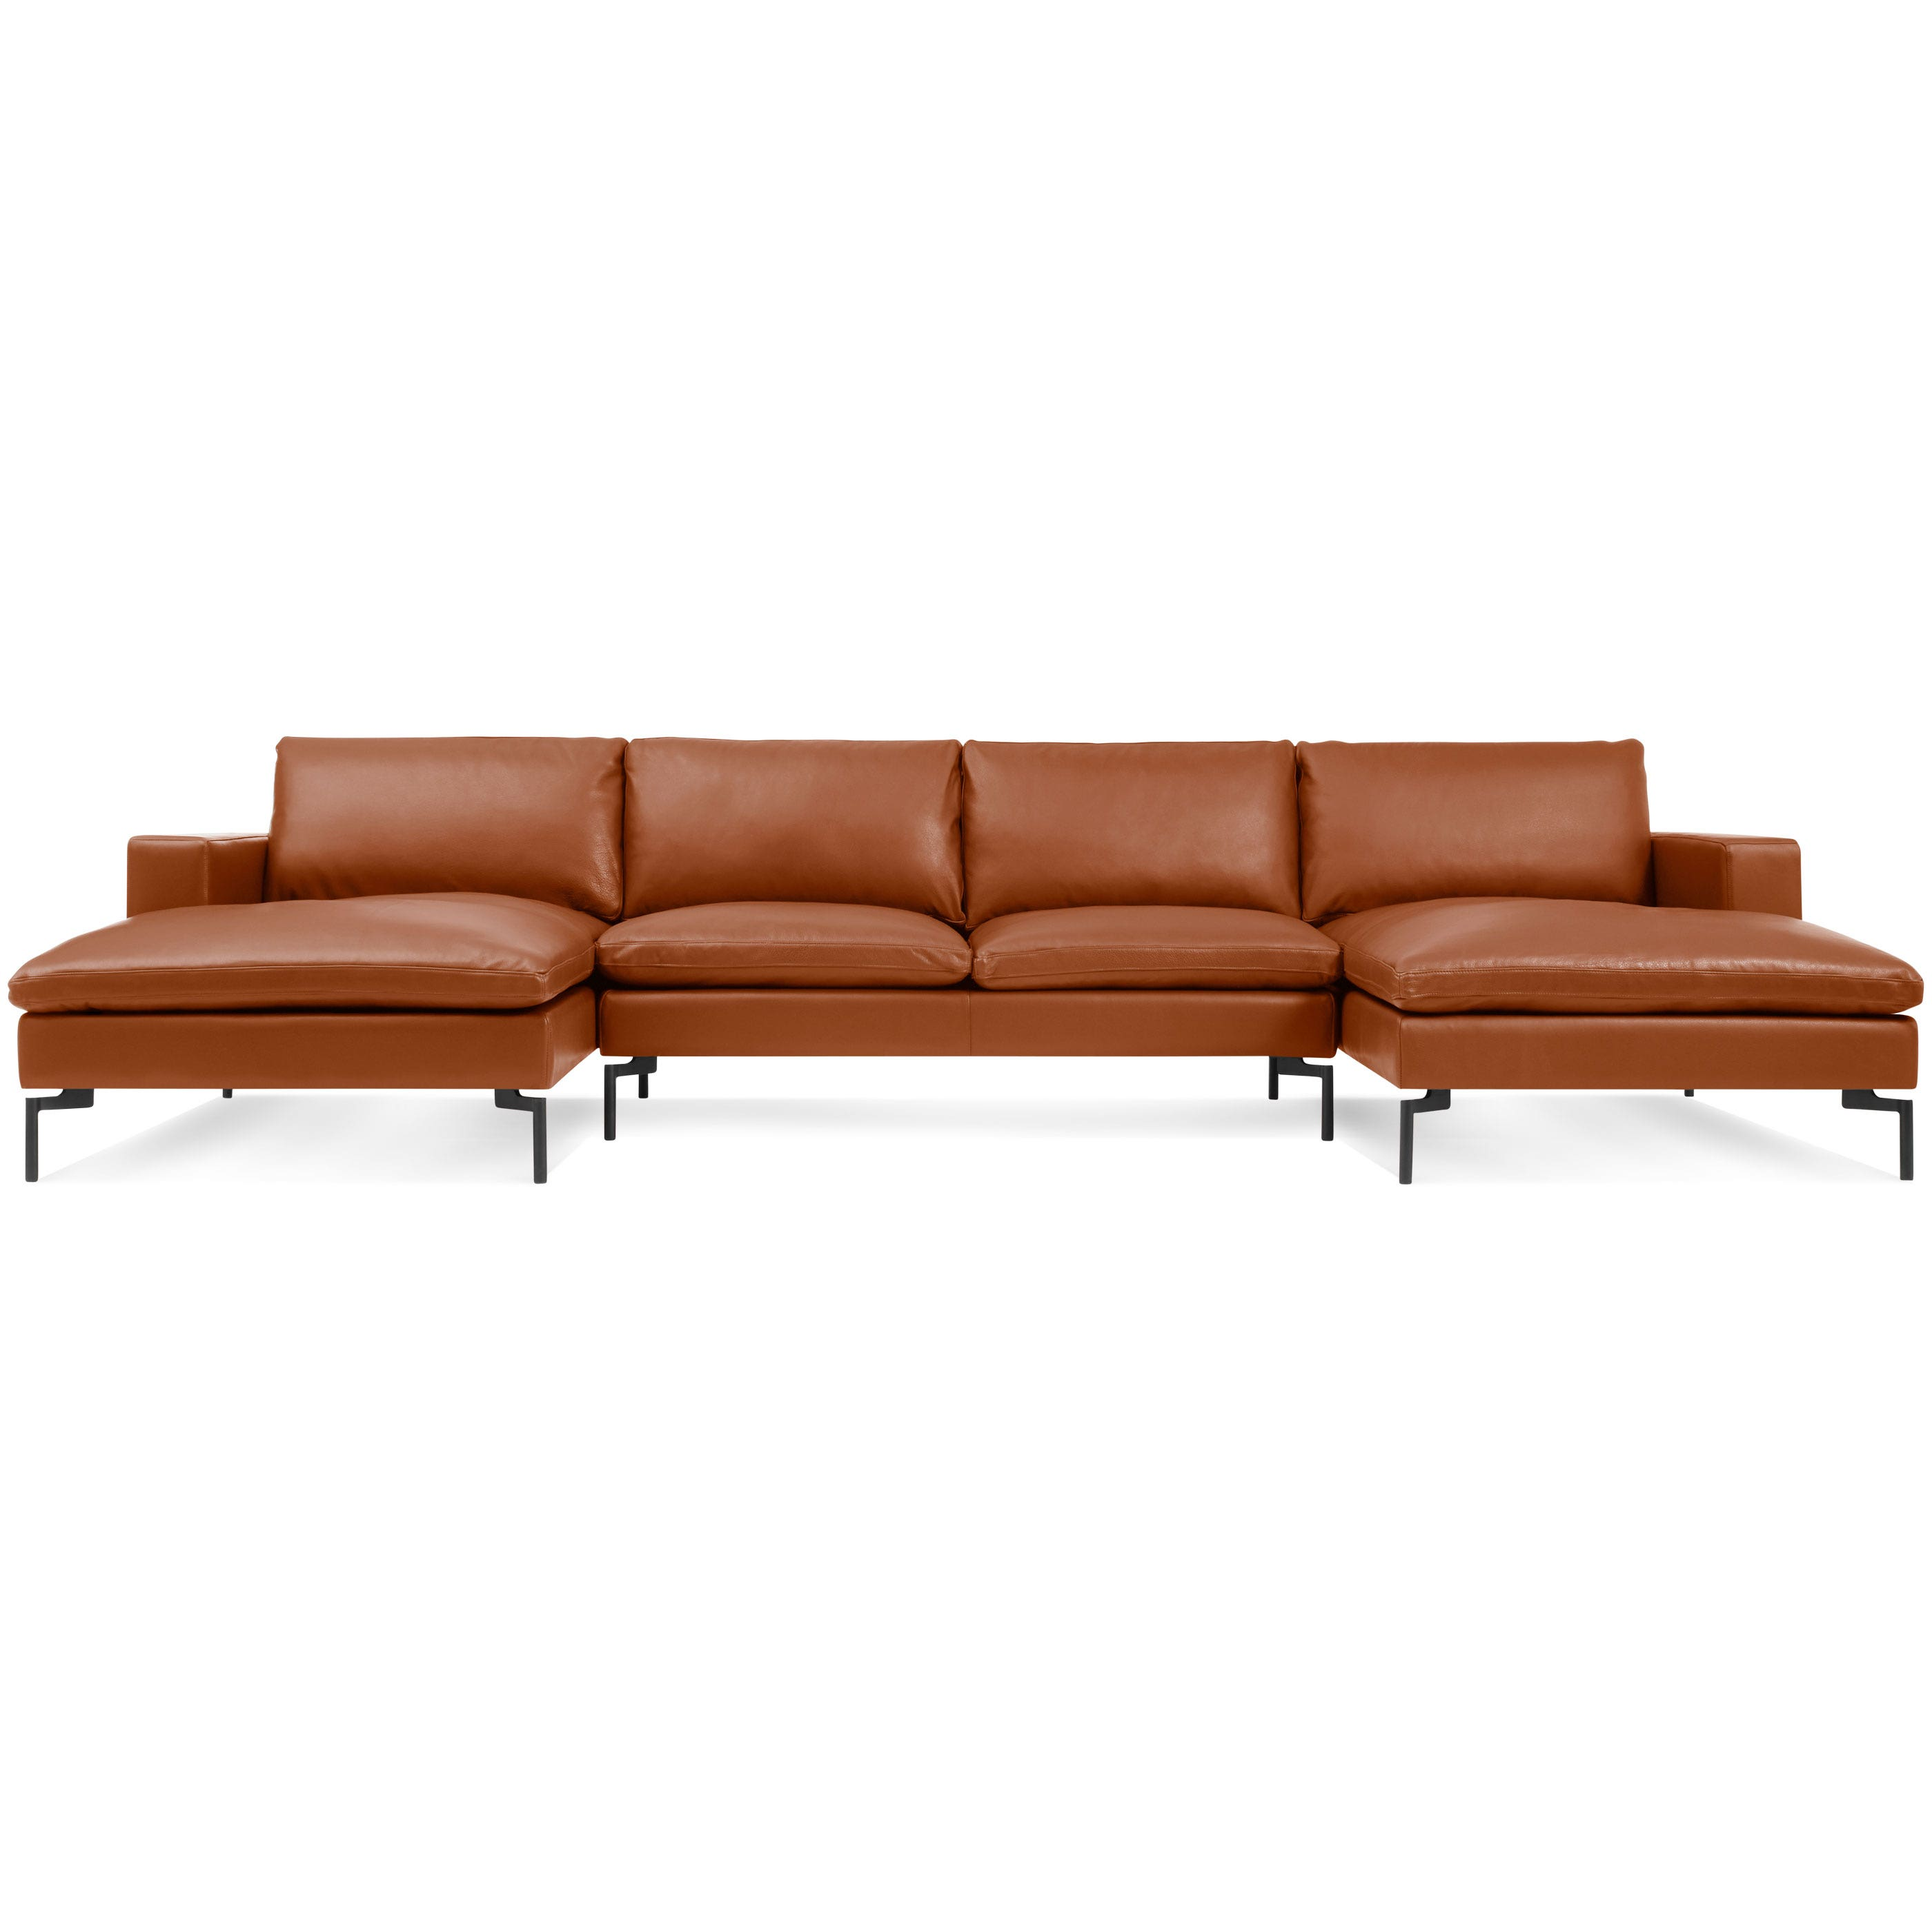 leather with livingroom tan loveseat whiskey italian chaise redmond couch small sofas mahogany sofa agreeable brandon aged l sleeper in sectional distressed for and